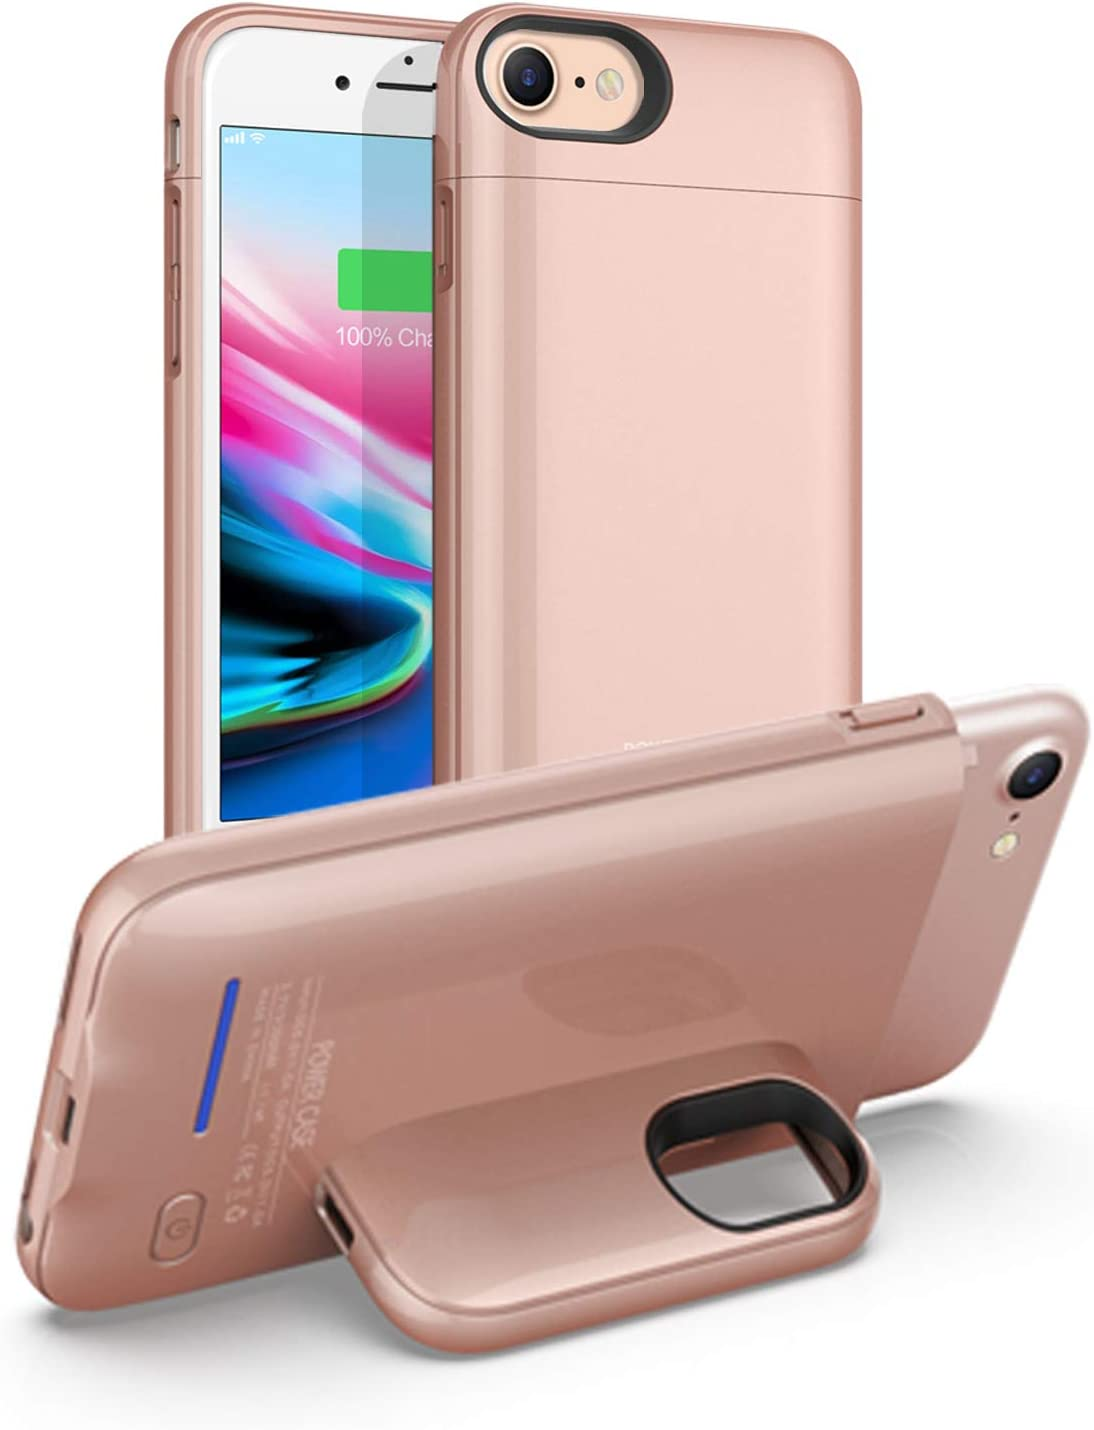 Battery Case for iPhone 6/6S/7/8/SE 2020(2nd Generation)—Charger Case Smart Protective Portable Charging Case?Upgraded—Mobile Phone Holder Function? Rechargeable Charger Case(4.7inch)—Rose Gold